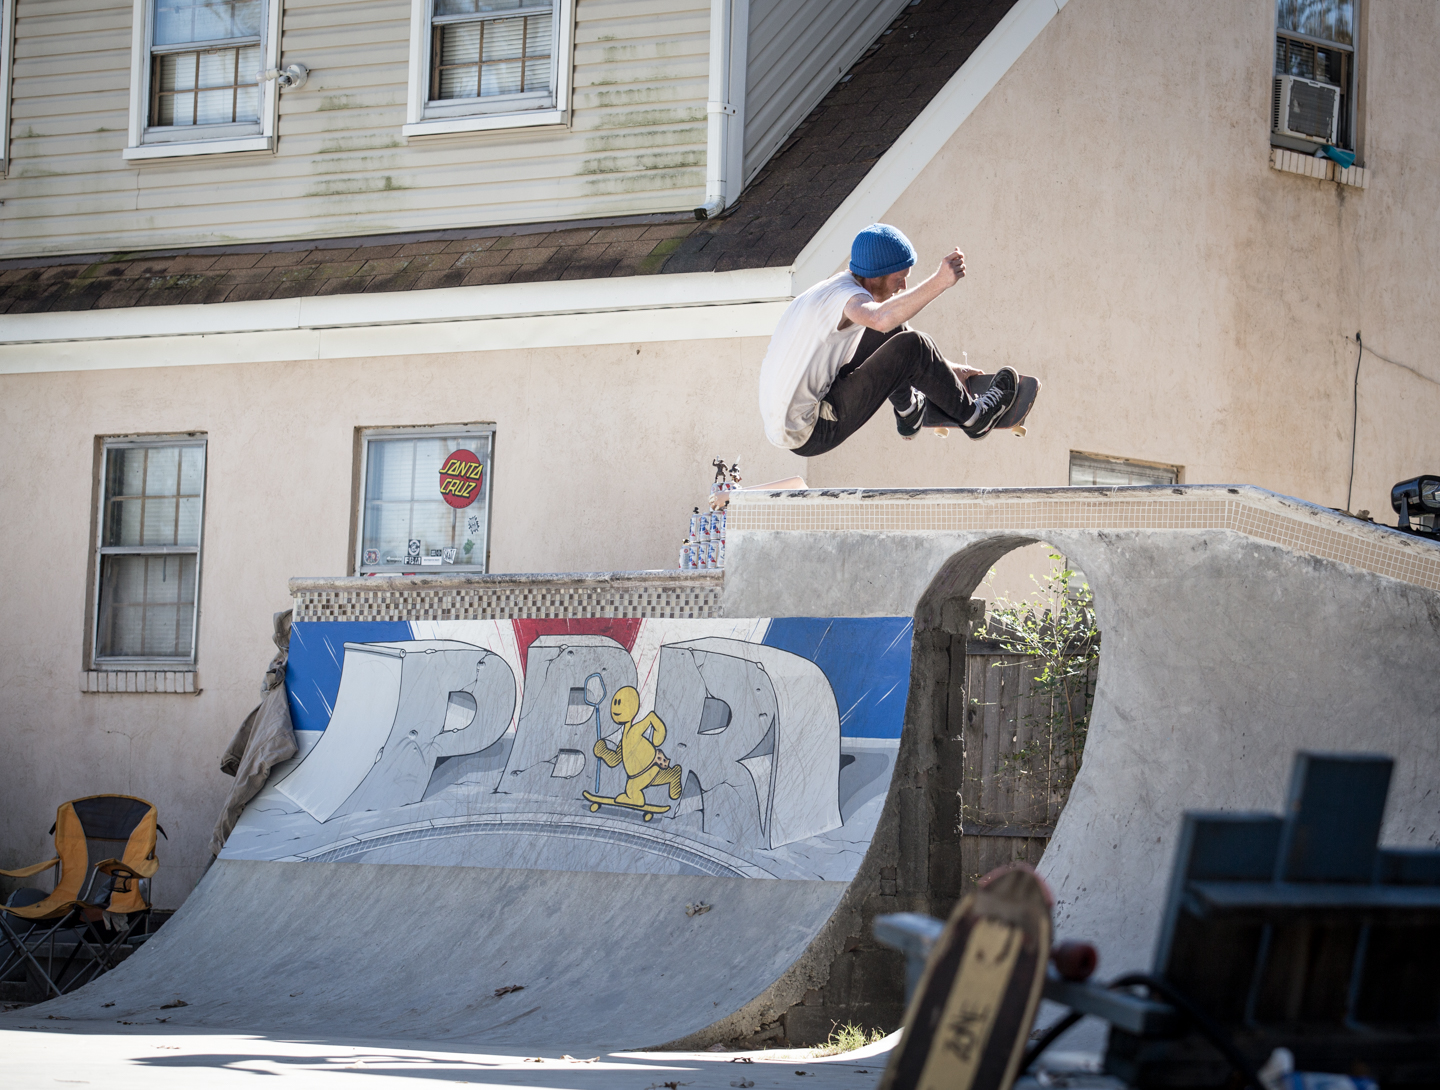 And we got to skate it to ourselves for a little while.  Ben Bradford frontside air.